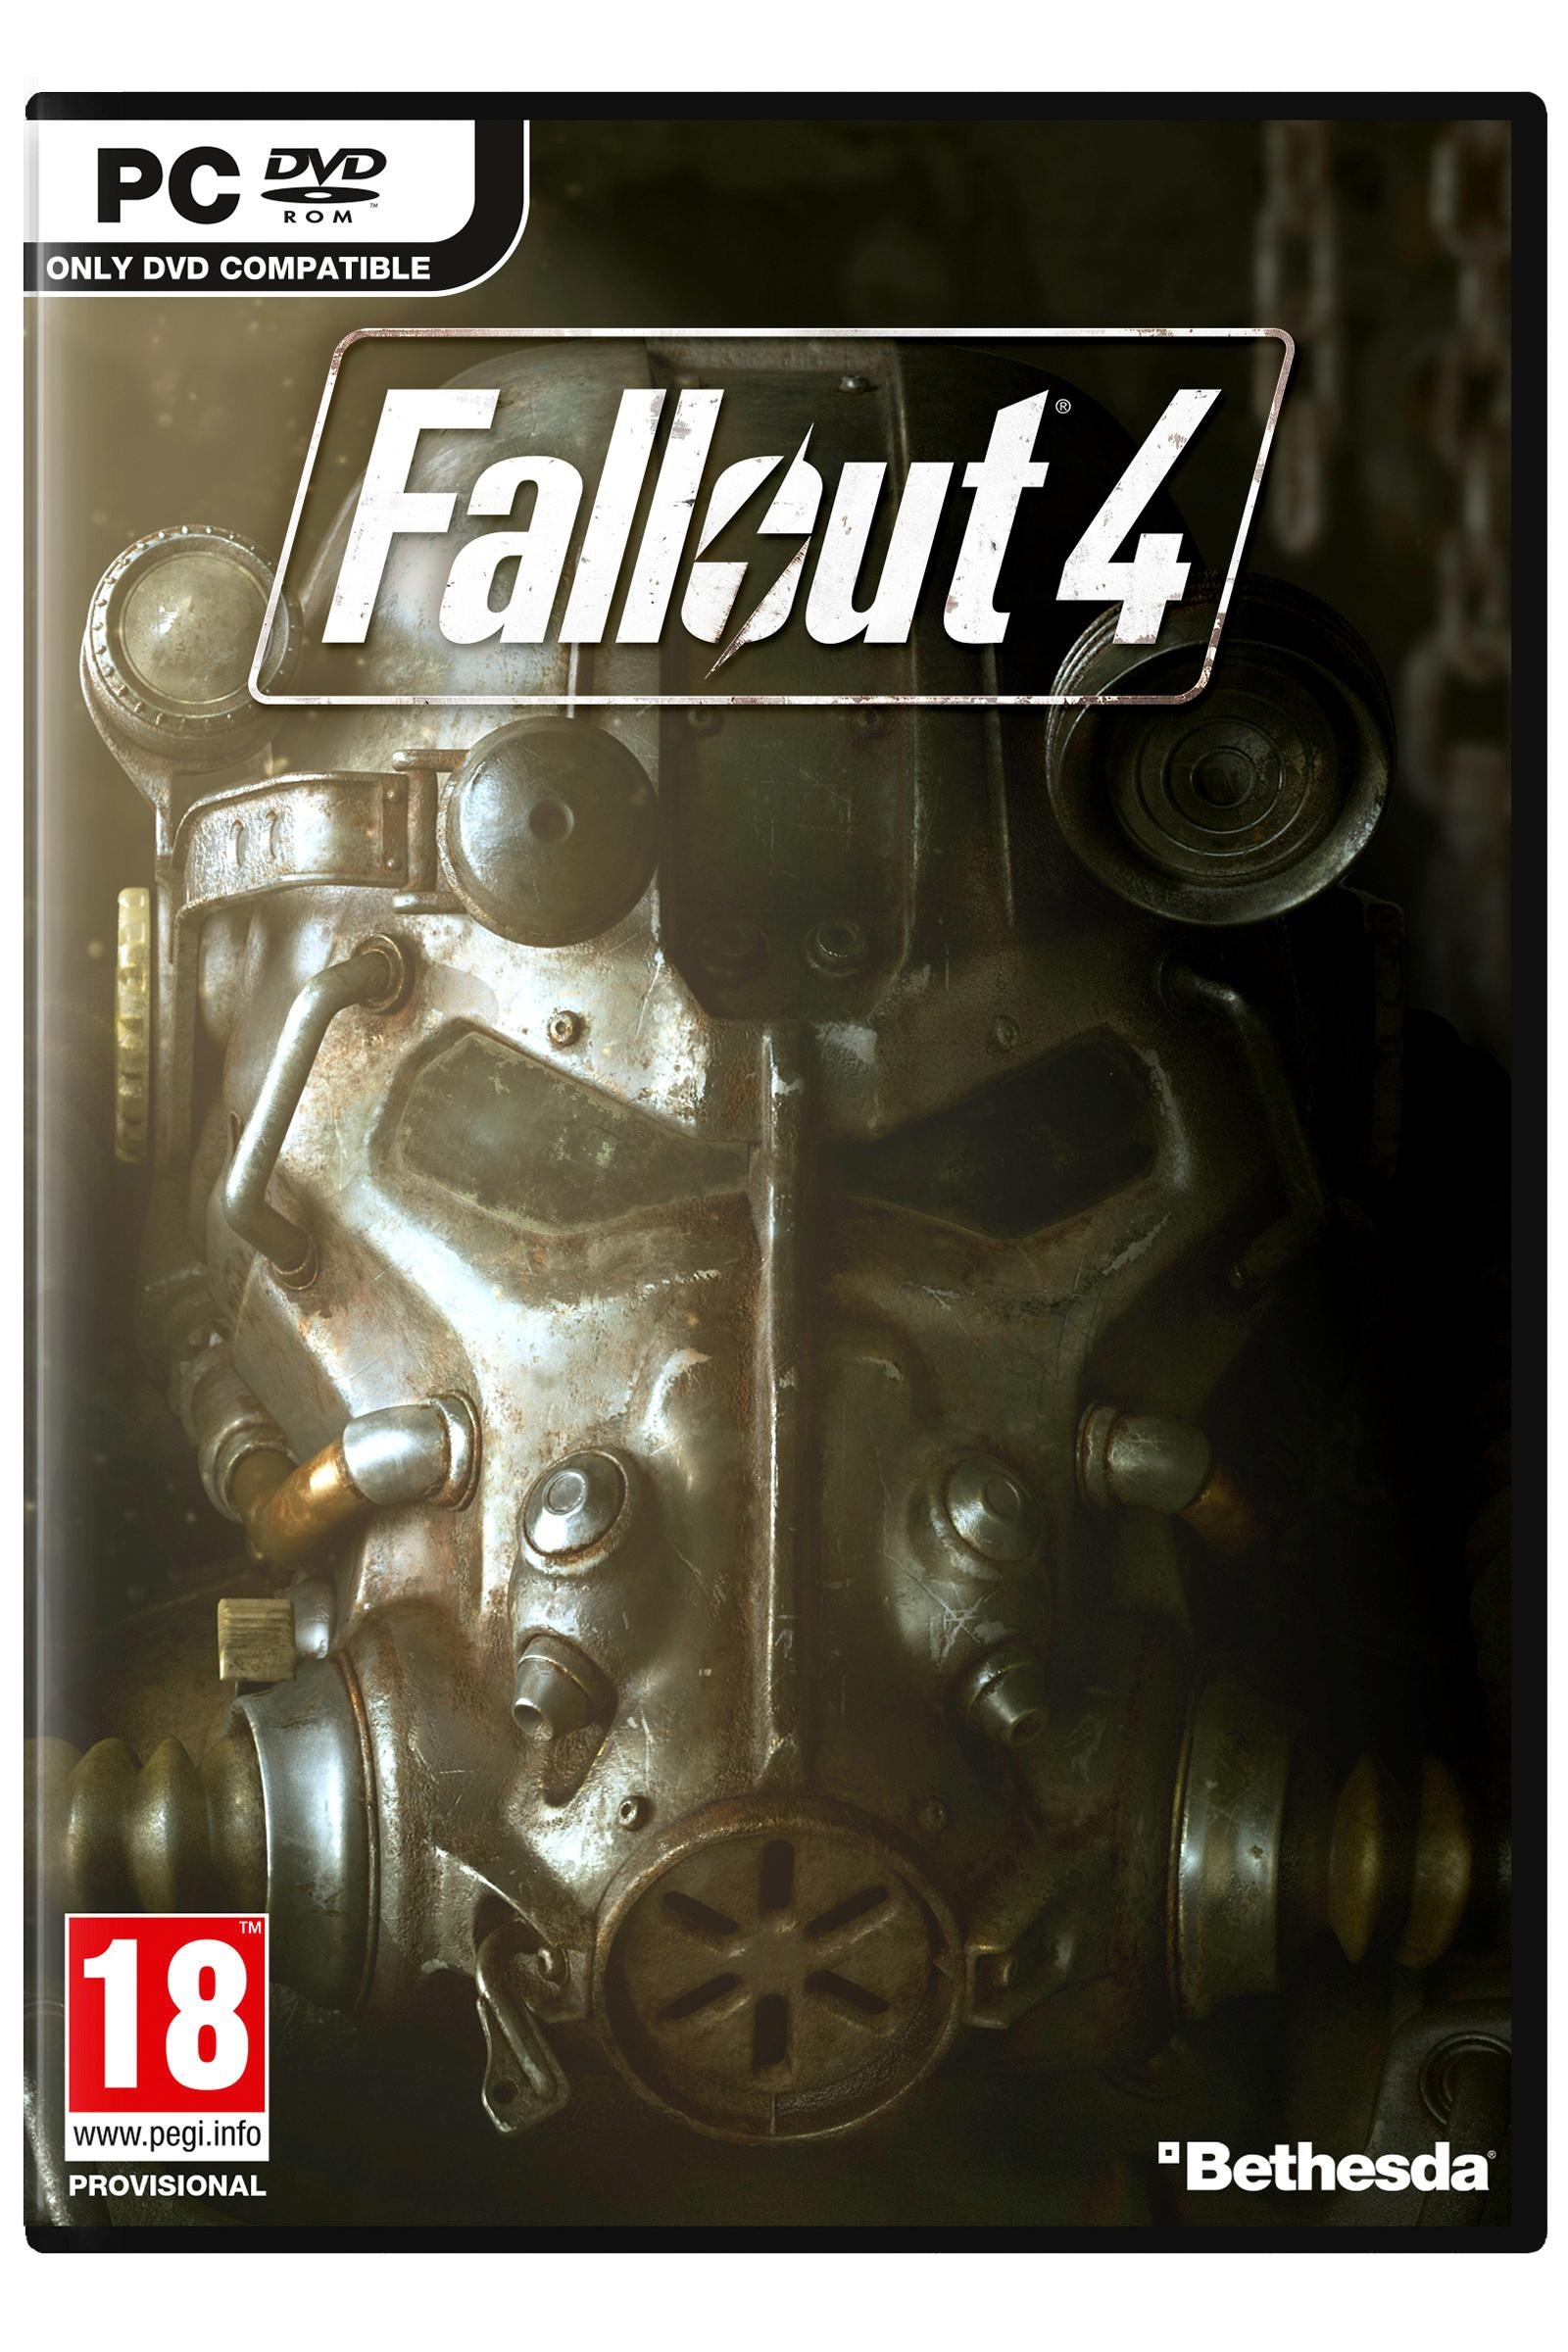 Fallout 4 voor